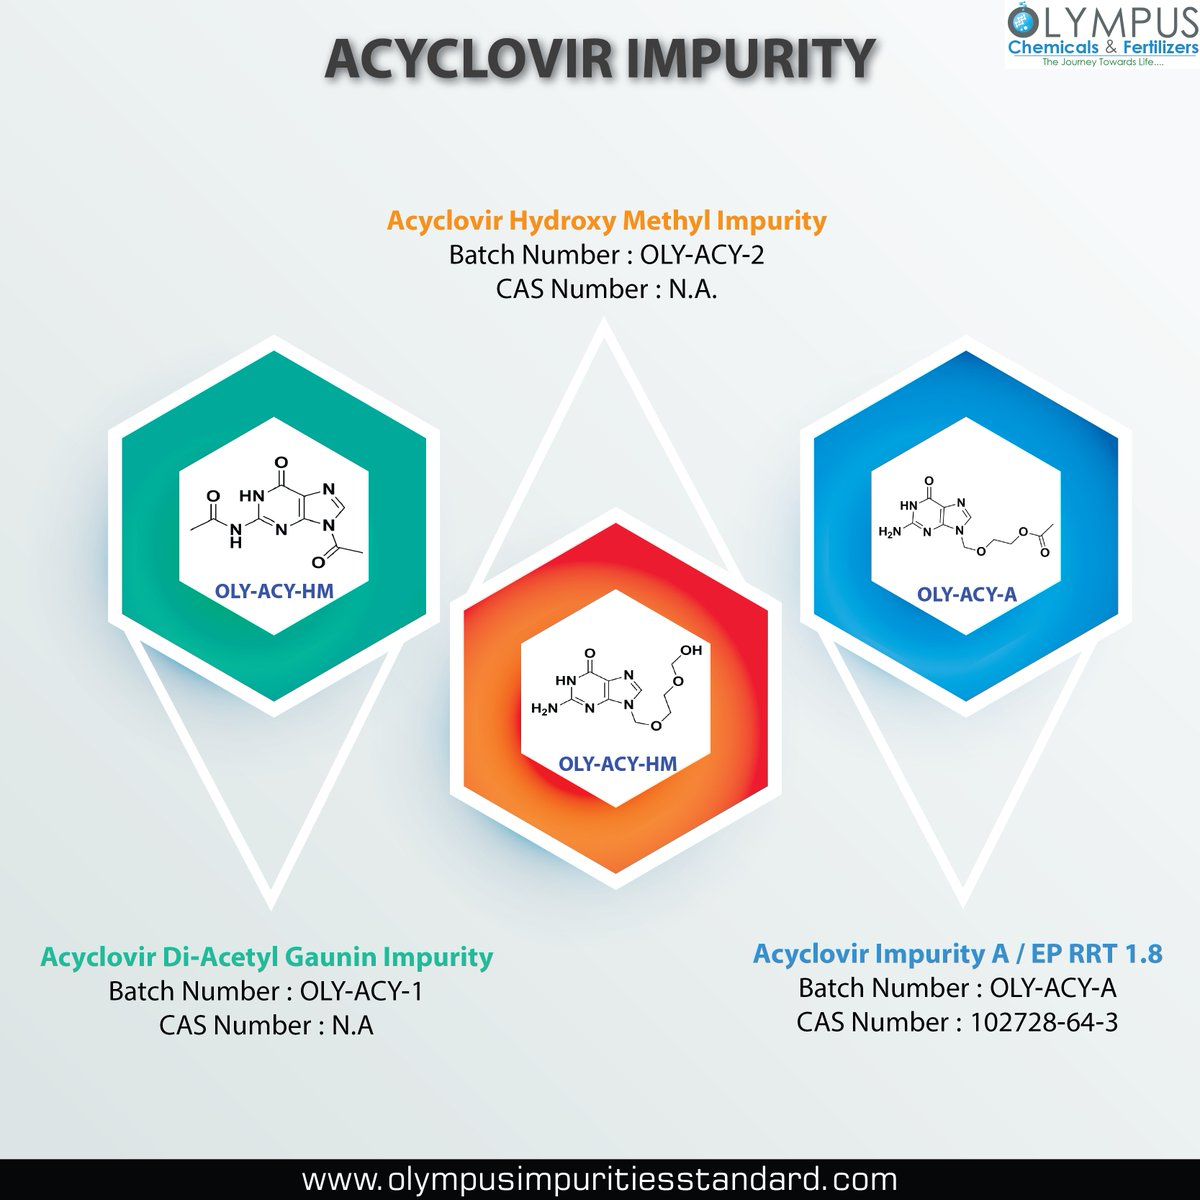 Acyclovir Impurity | Olympus Chemicals &amp; Fertilizers  #view More @  https:// goo.gl/Ryidfs  &nbsp;   #chemical #INDUSTRY #manufacturing #medicine<br>http://pic.twitter.com/lzsGQn5ocj